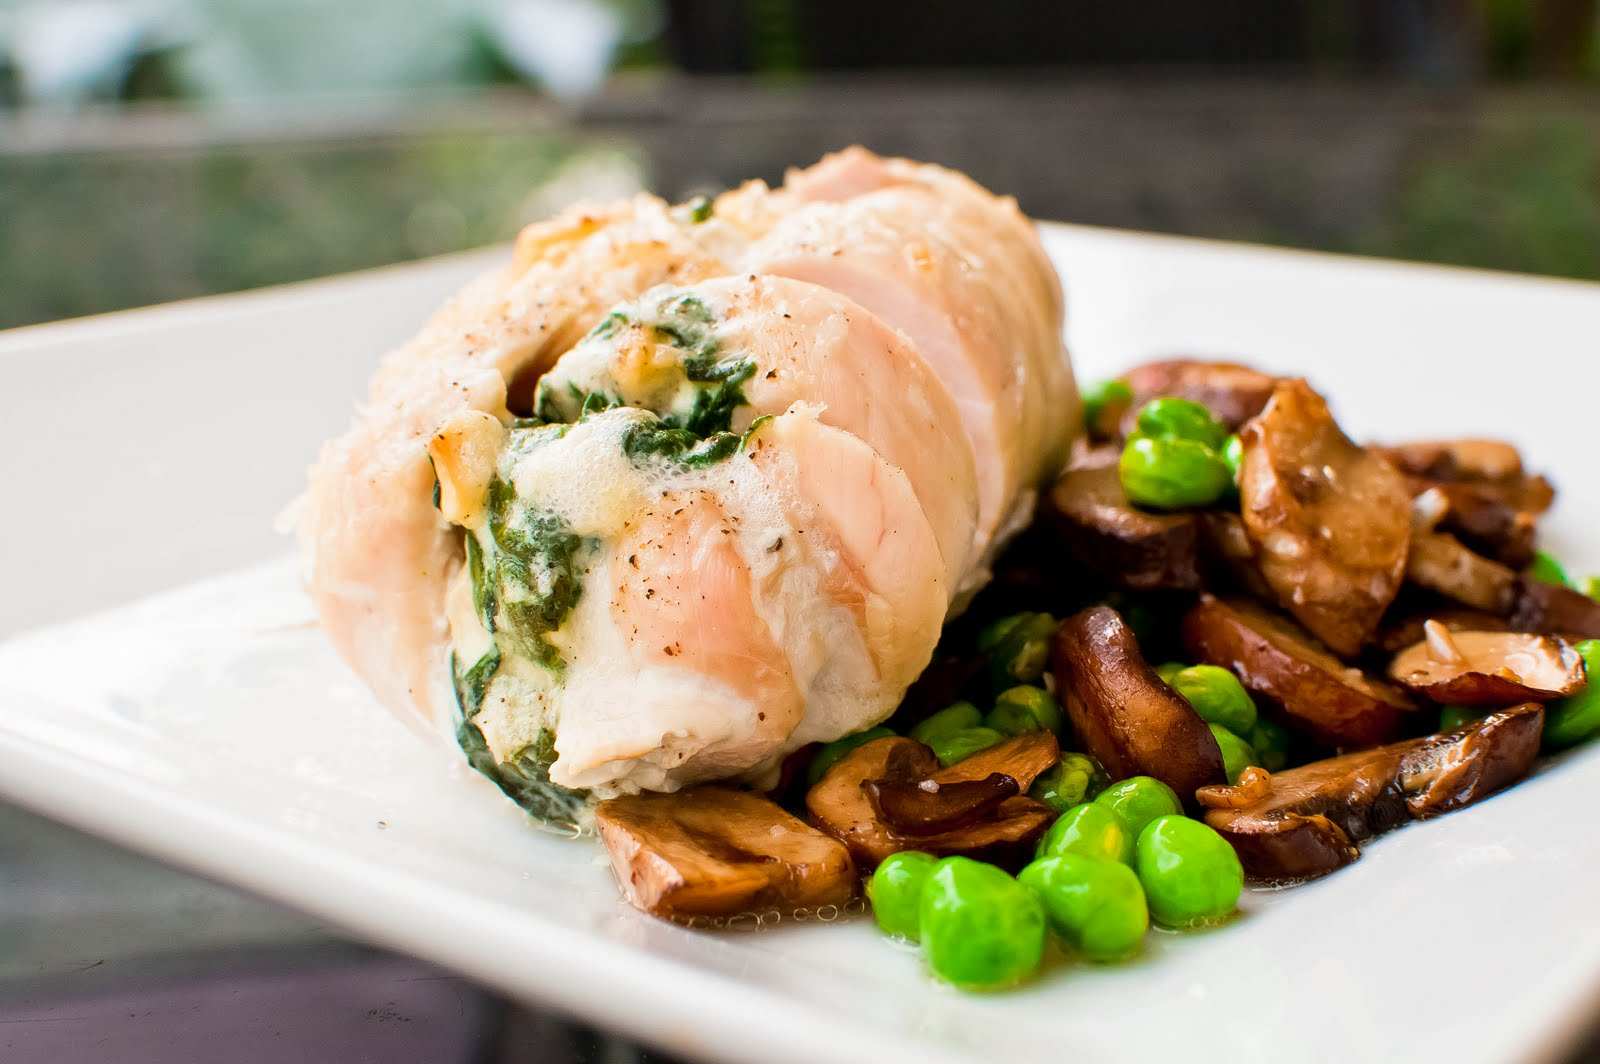 ... Be Good.: Spinach-Stuffed Chicken Breasts w/ Spicy Peas & Mushrooms